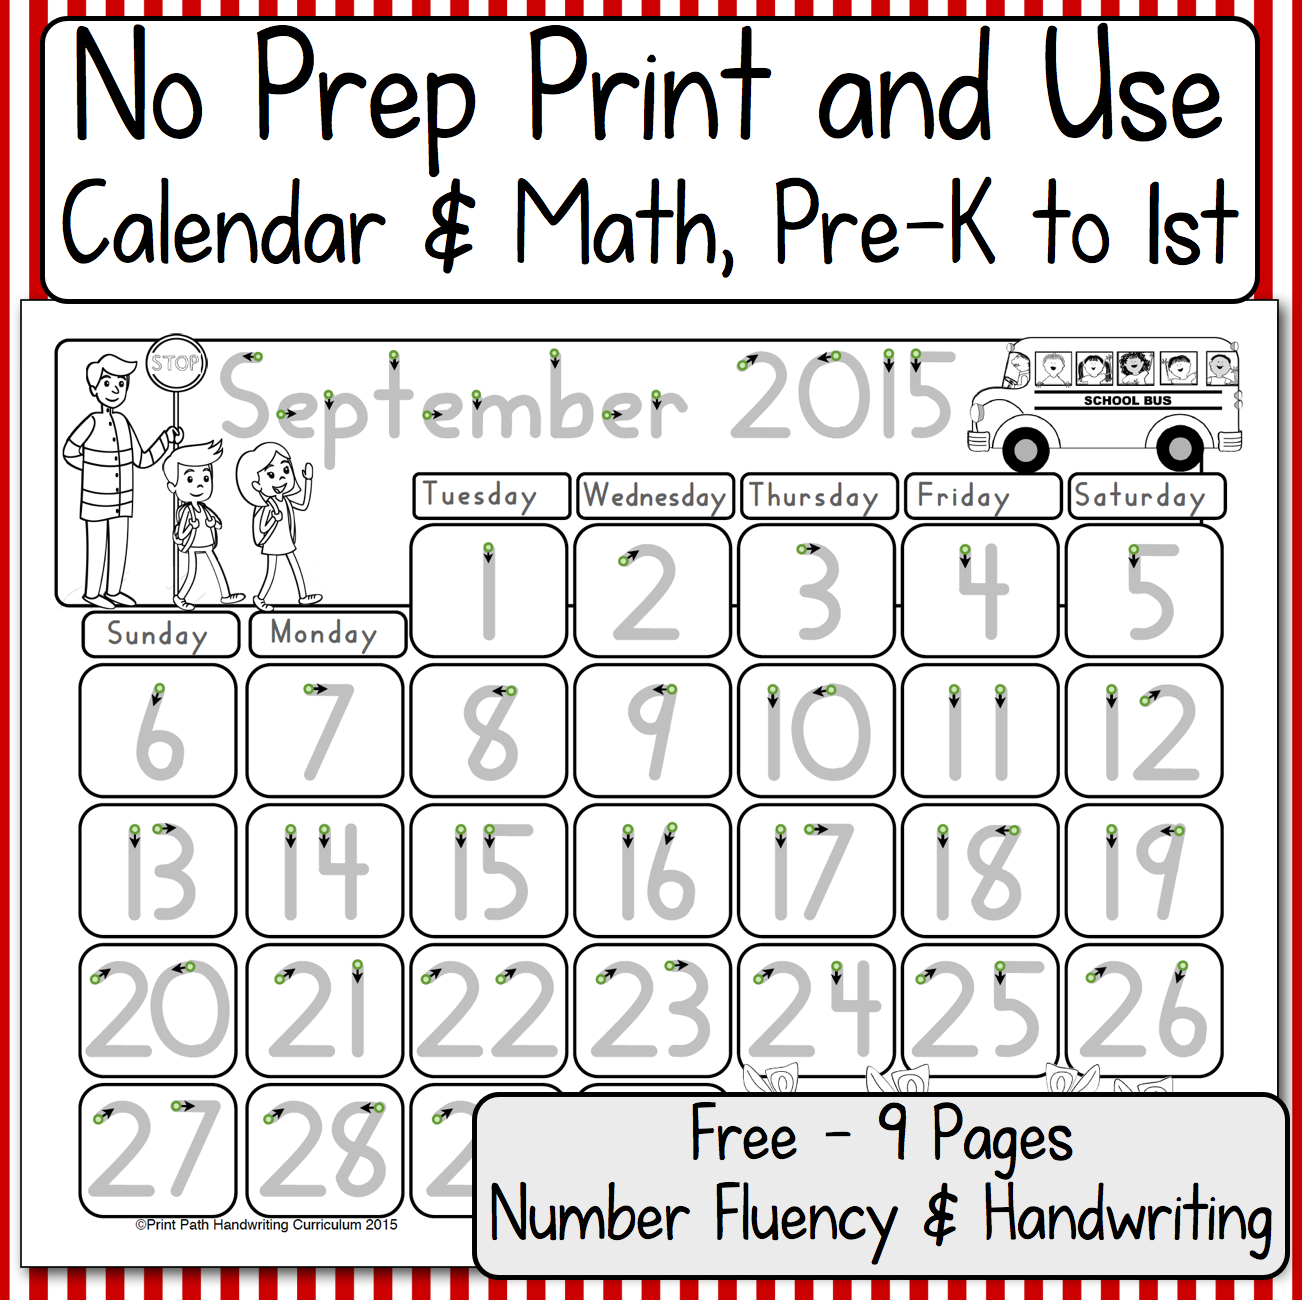 Using Calendars For Number Fluency And Handwriting Skills